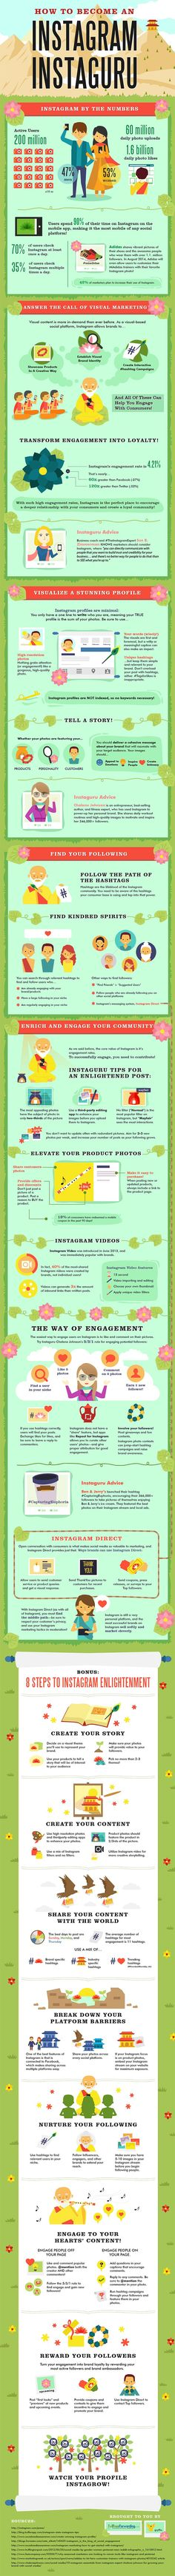 #infographic 8 Expert Tips to Become an Instagram Marketing Guru #socialmediasavvy